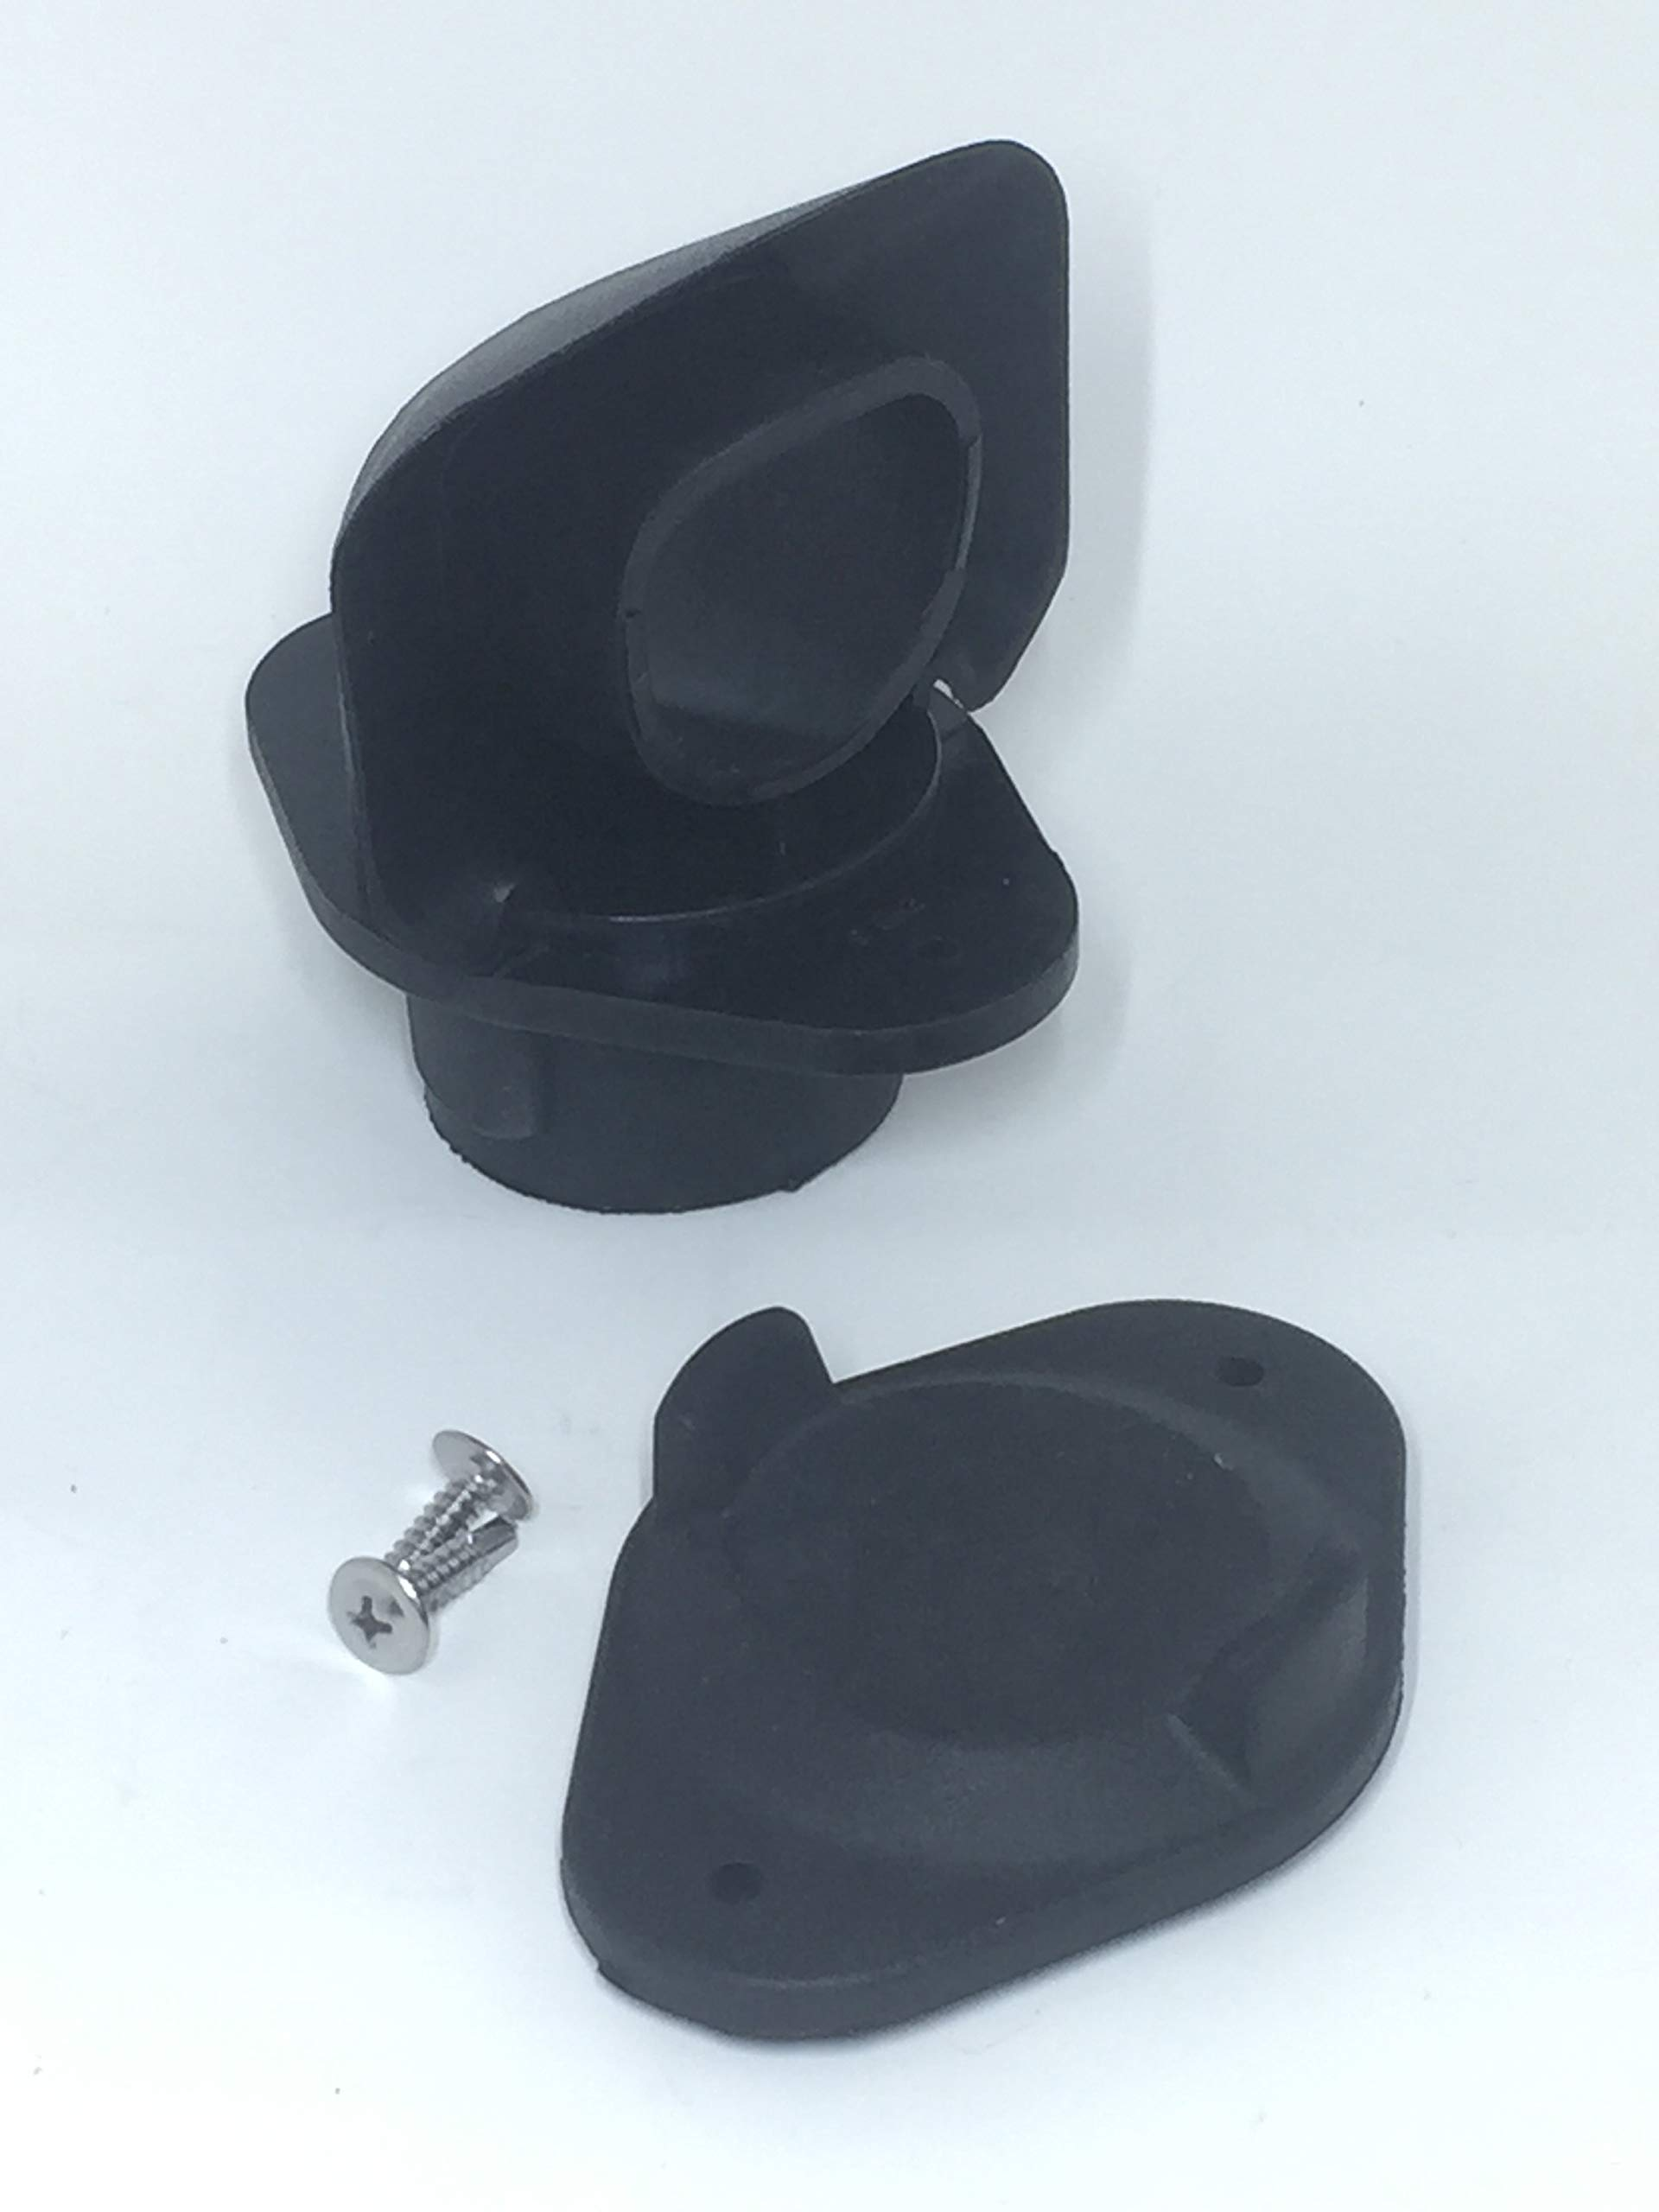 EarthMinded DIY Rain Barrel Diverter Parts 2x3, 3x4 Round Downspouts (Diverter, Winter Cover Plate, Parts to fit 2x3 Downpipe)